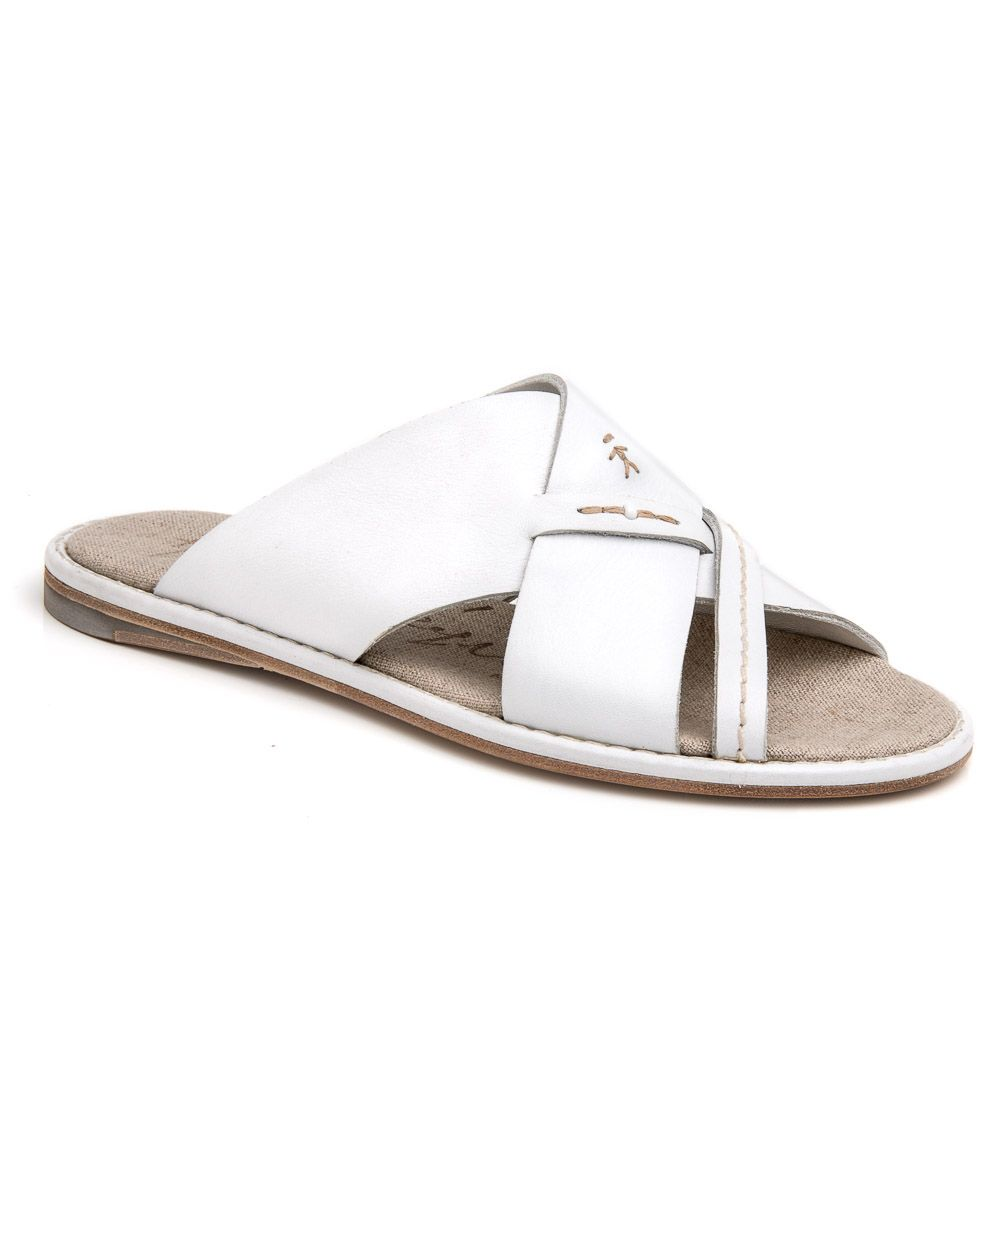 "dae2c690a384b9 Henry Beguelin White Spinner Slide Sandal Rounded open toe Leather sole  Leather upper Tonal stitching Fabric lined footbed .25"" heel"